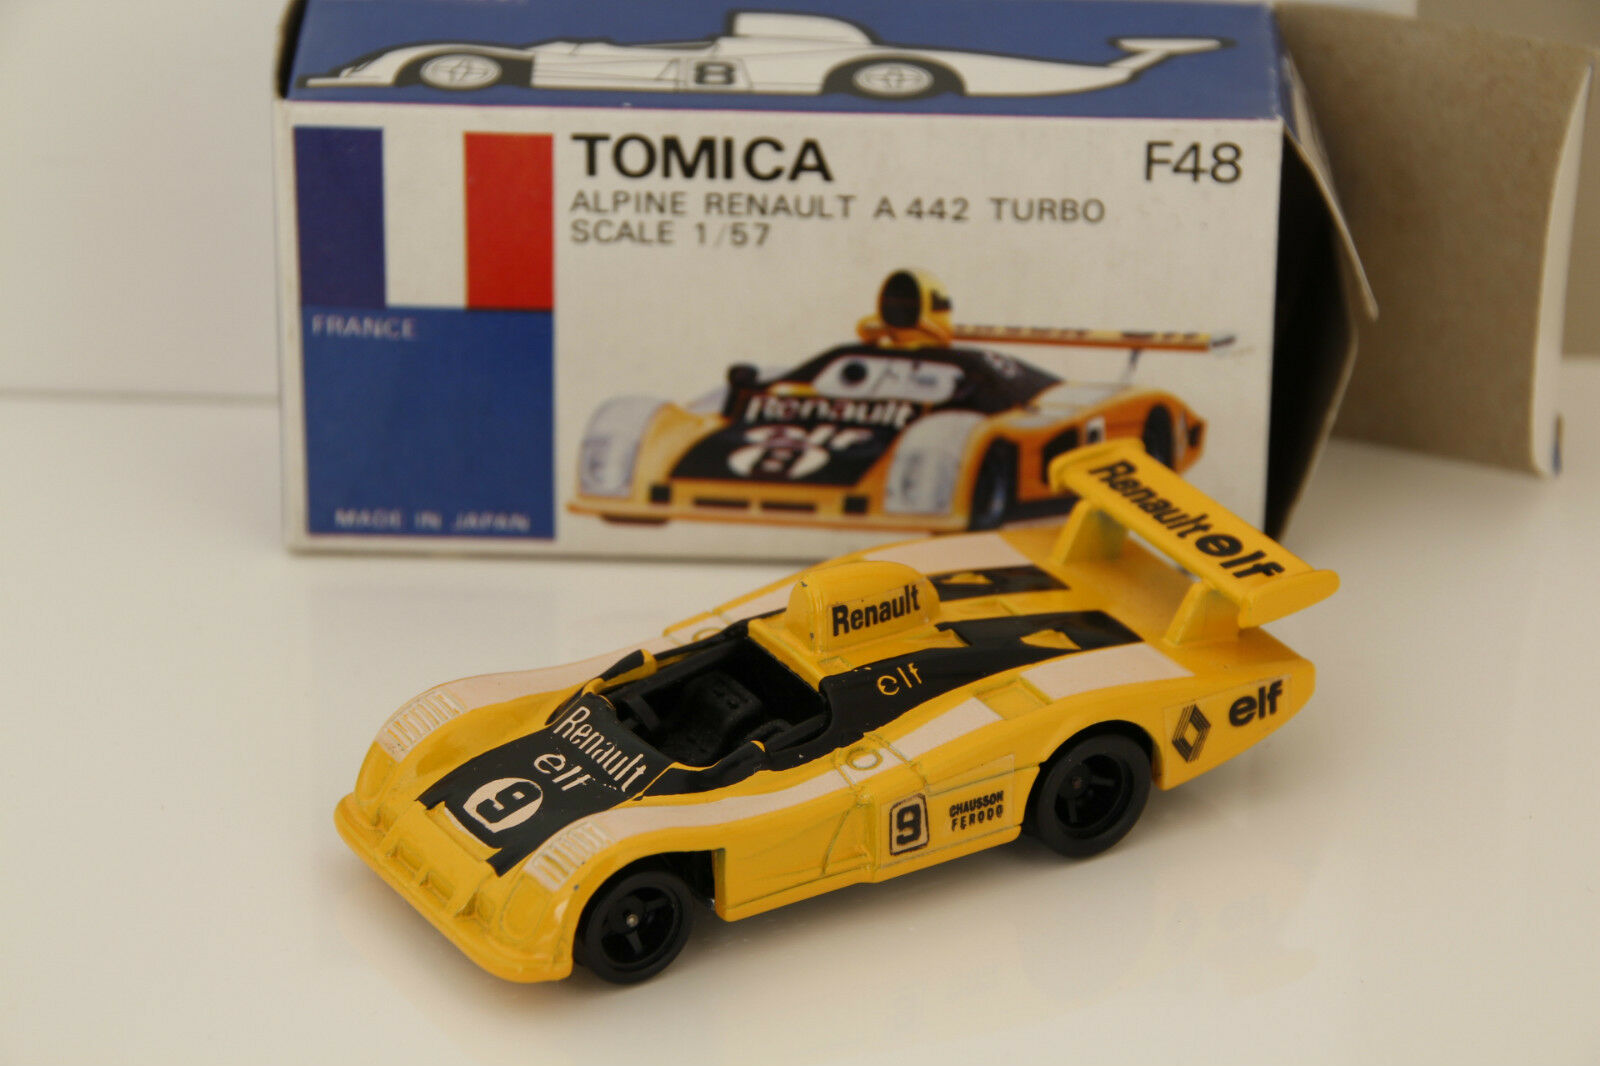 Tomica Renault Alpine A 442 Turbo 1 57 scale diecast model 1 64